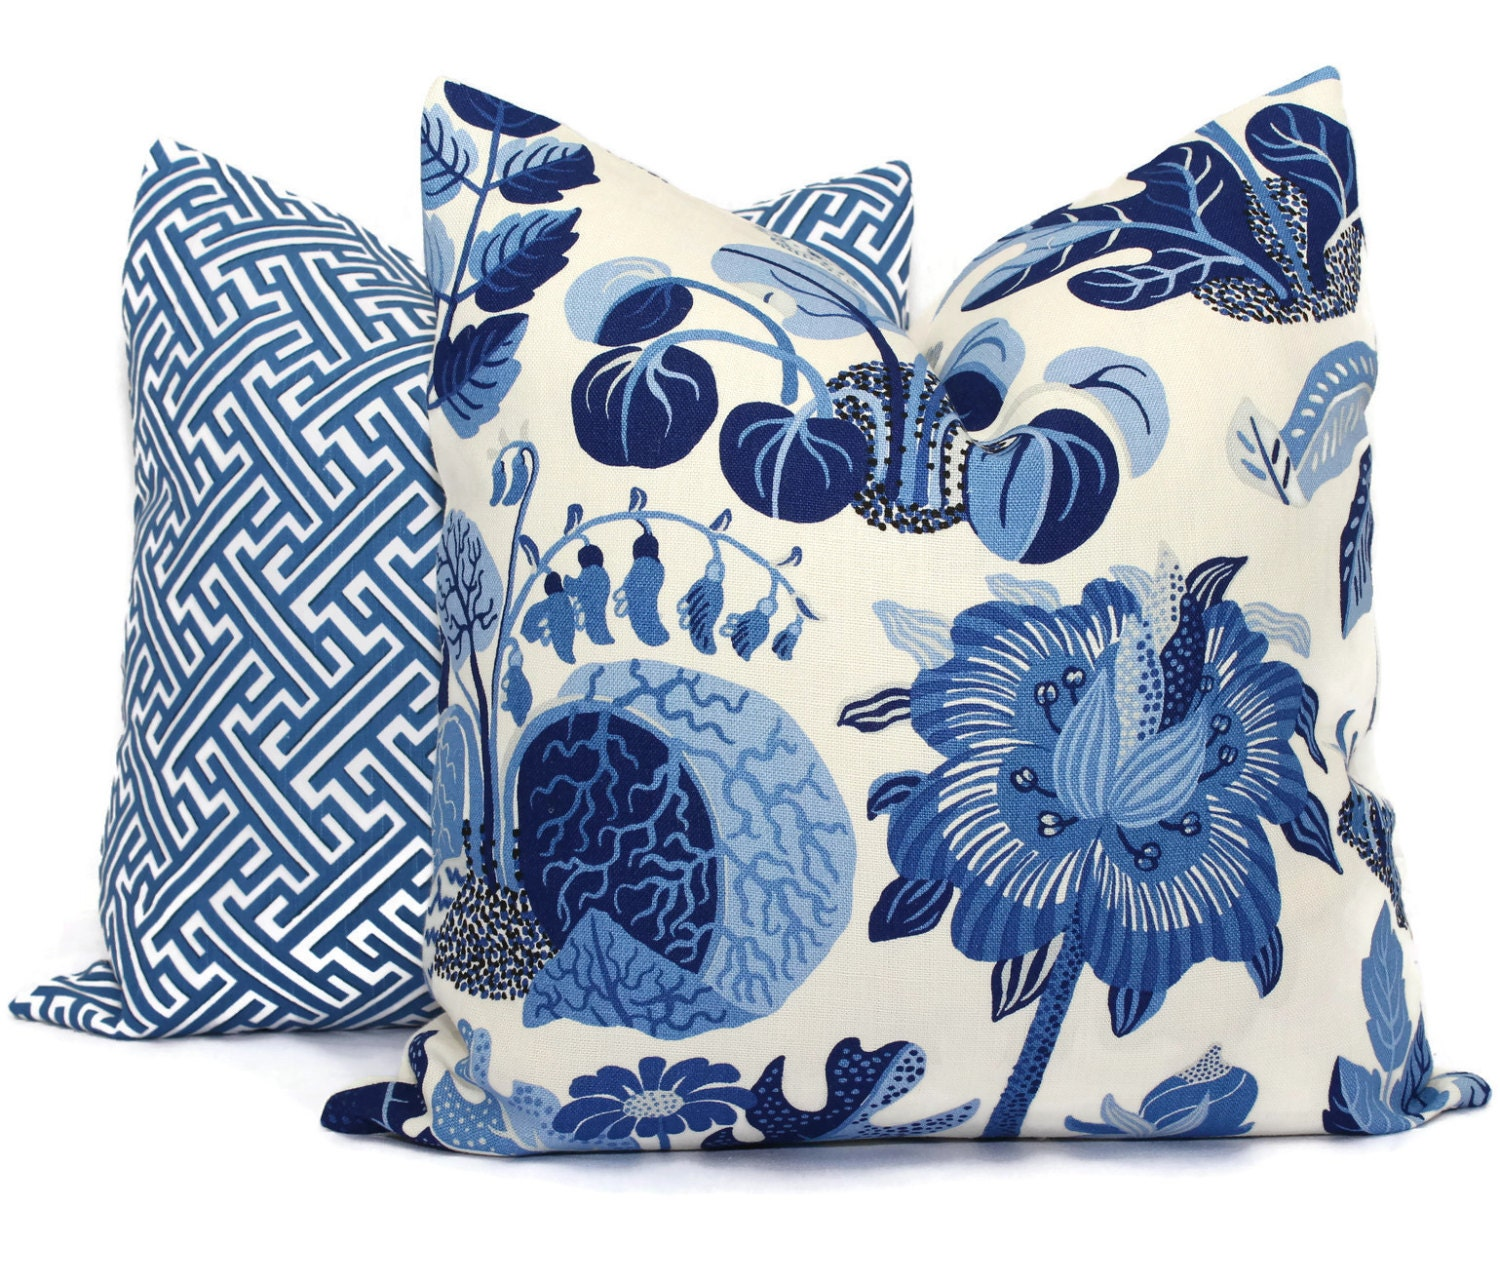 navy for gallery white blue the kinda target throw idea i pillows grey of like pillow cushion decorative blanket colors and mint